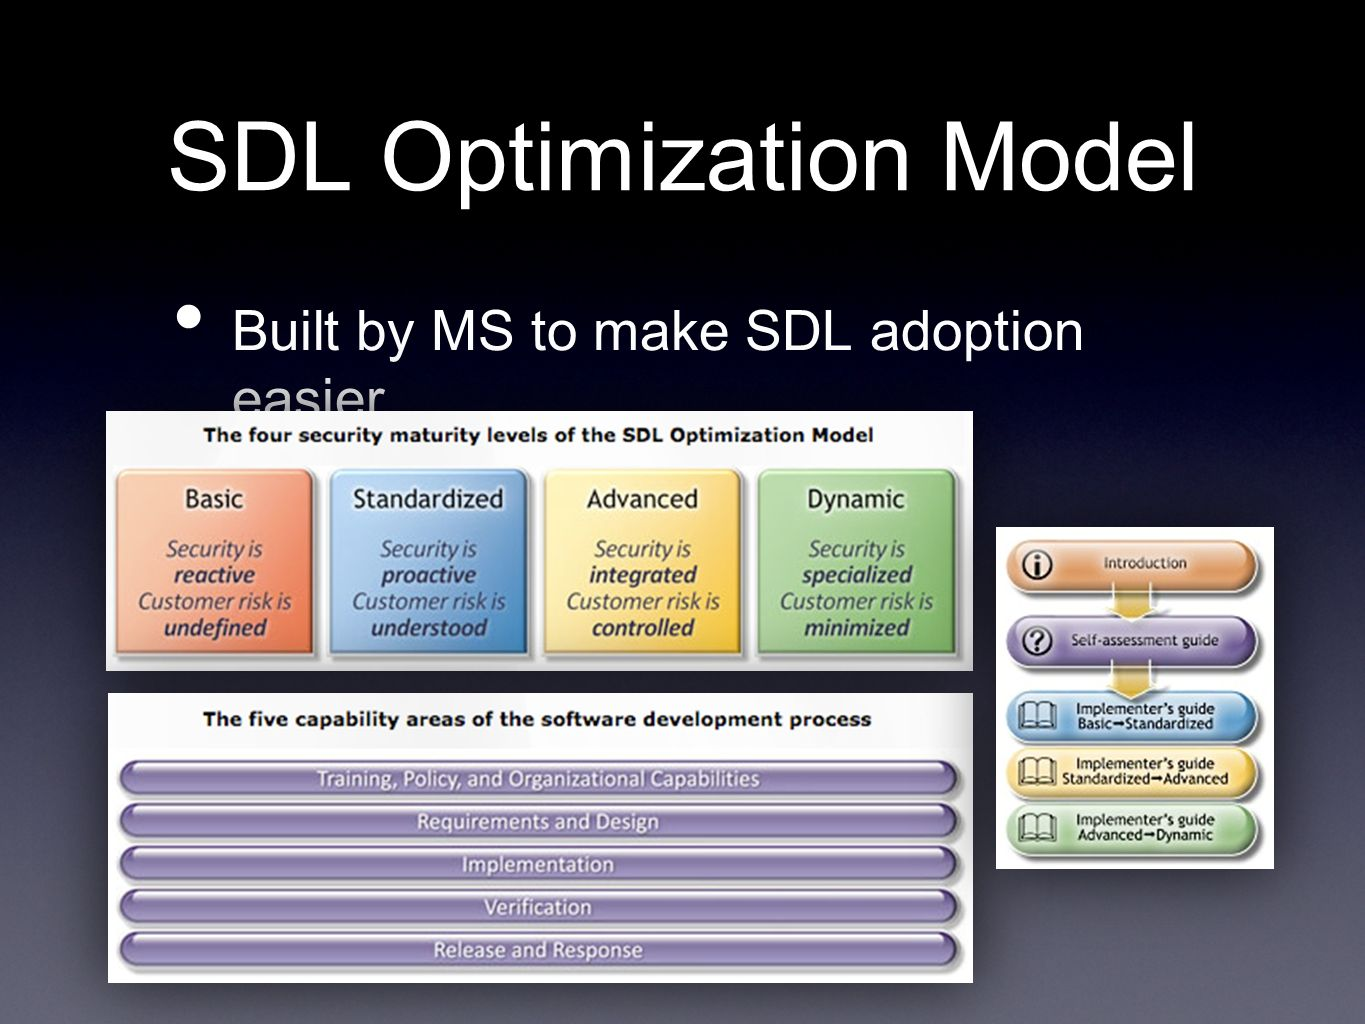 SDL Optimization Model